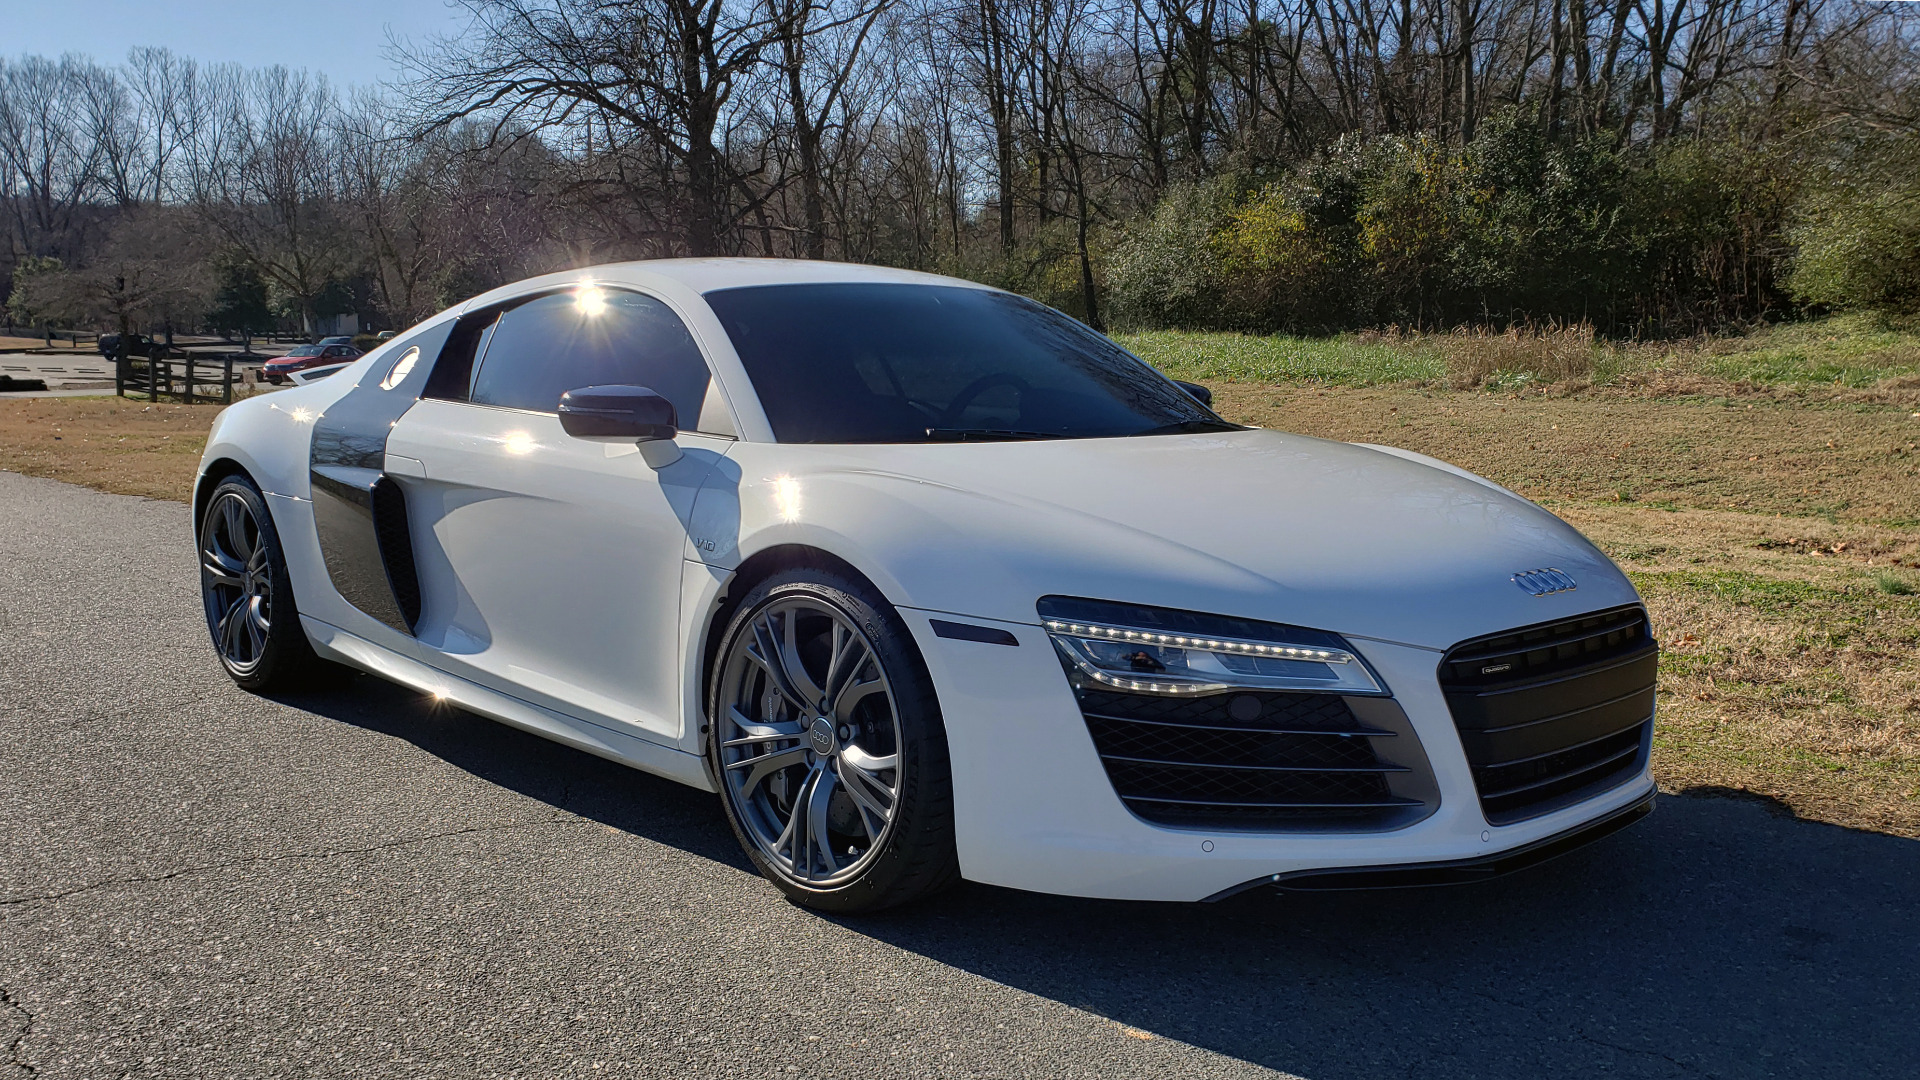 Used 2015 Audi R8 V10 PLUS / S-TRONIC / B&O SOUND / SPORT EXH / REARVIEW for sale Sold at Formula Imports in Charlotte NC 28227 16